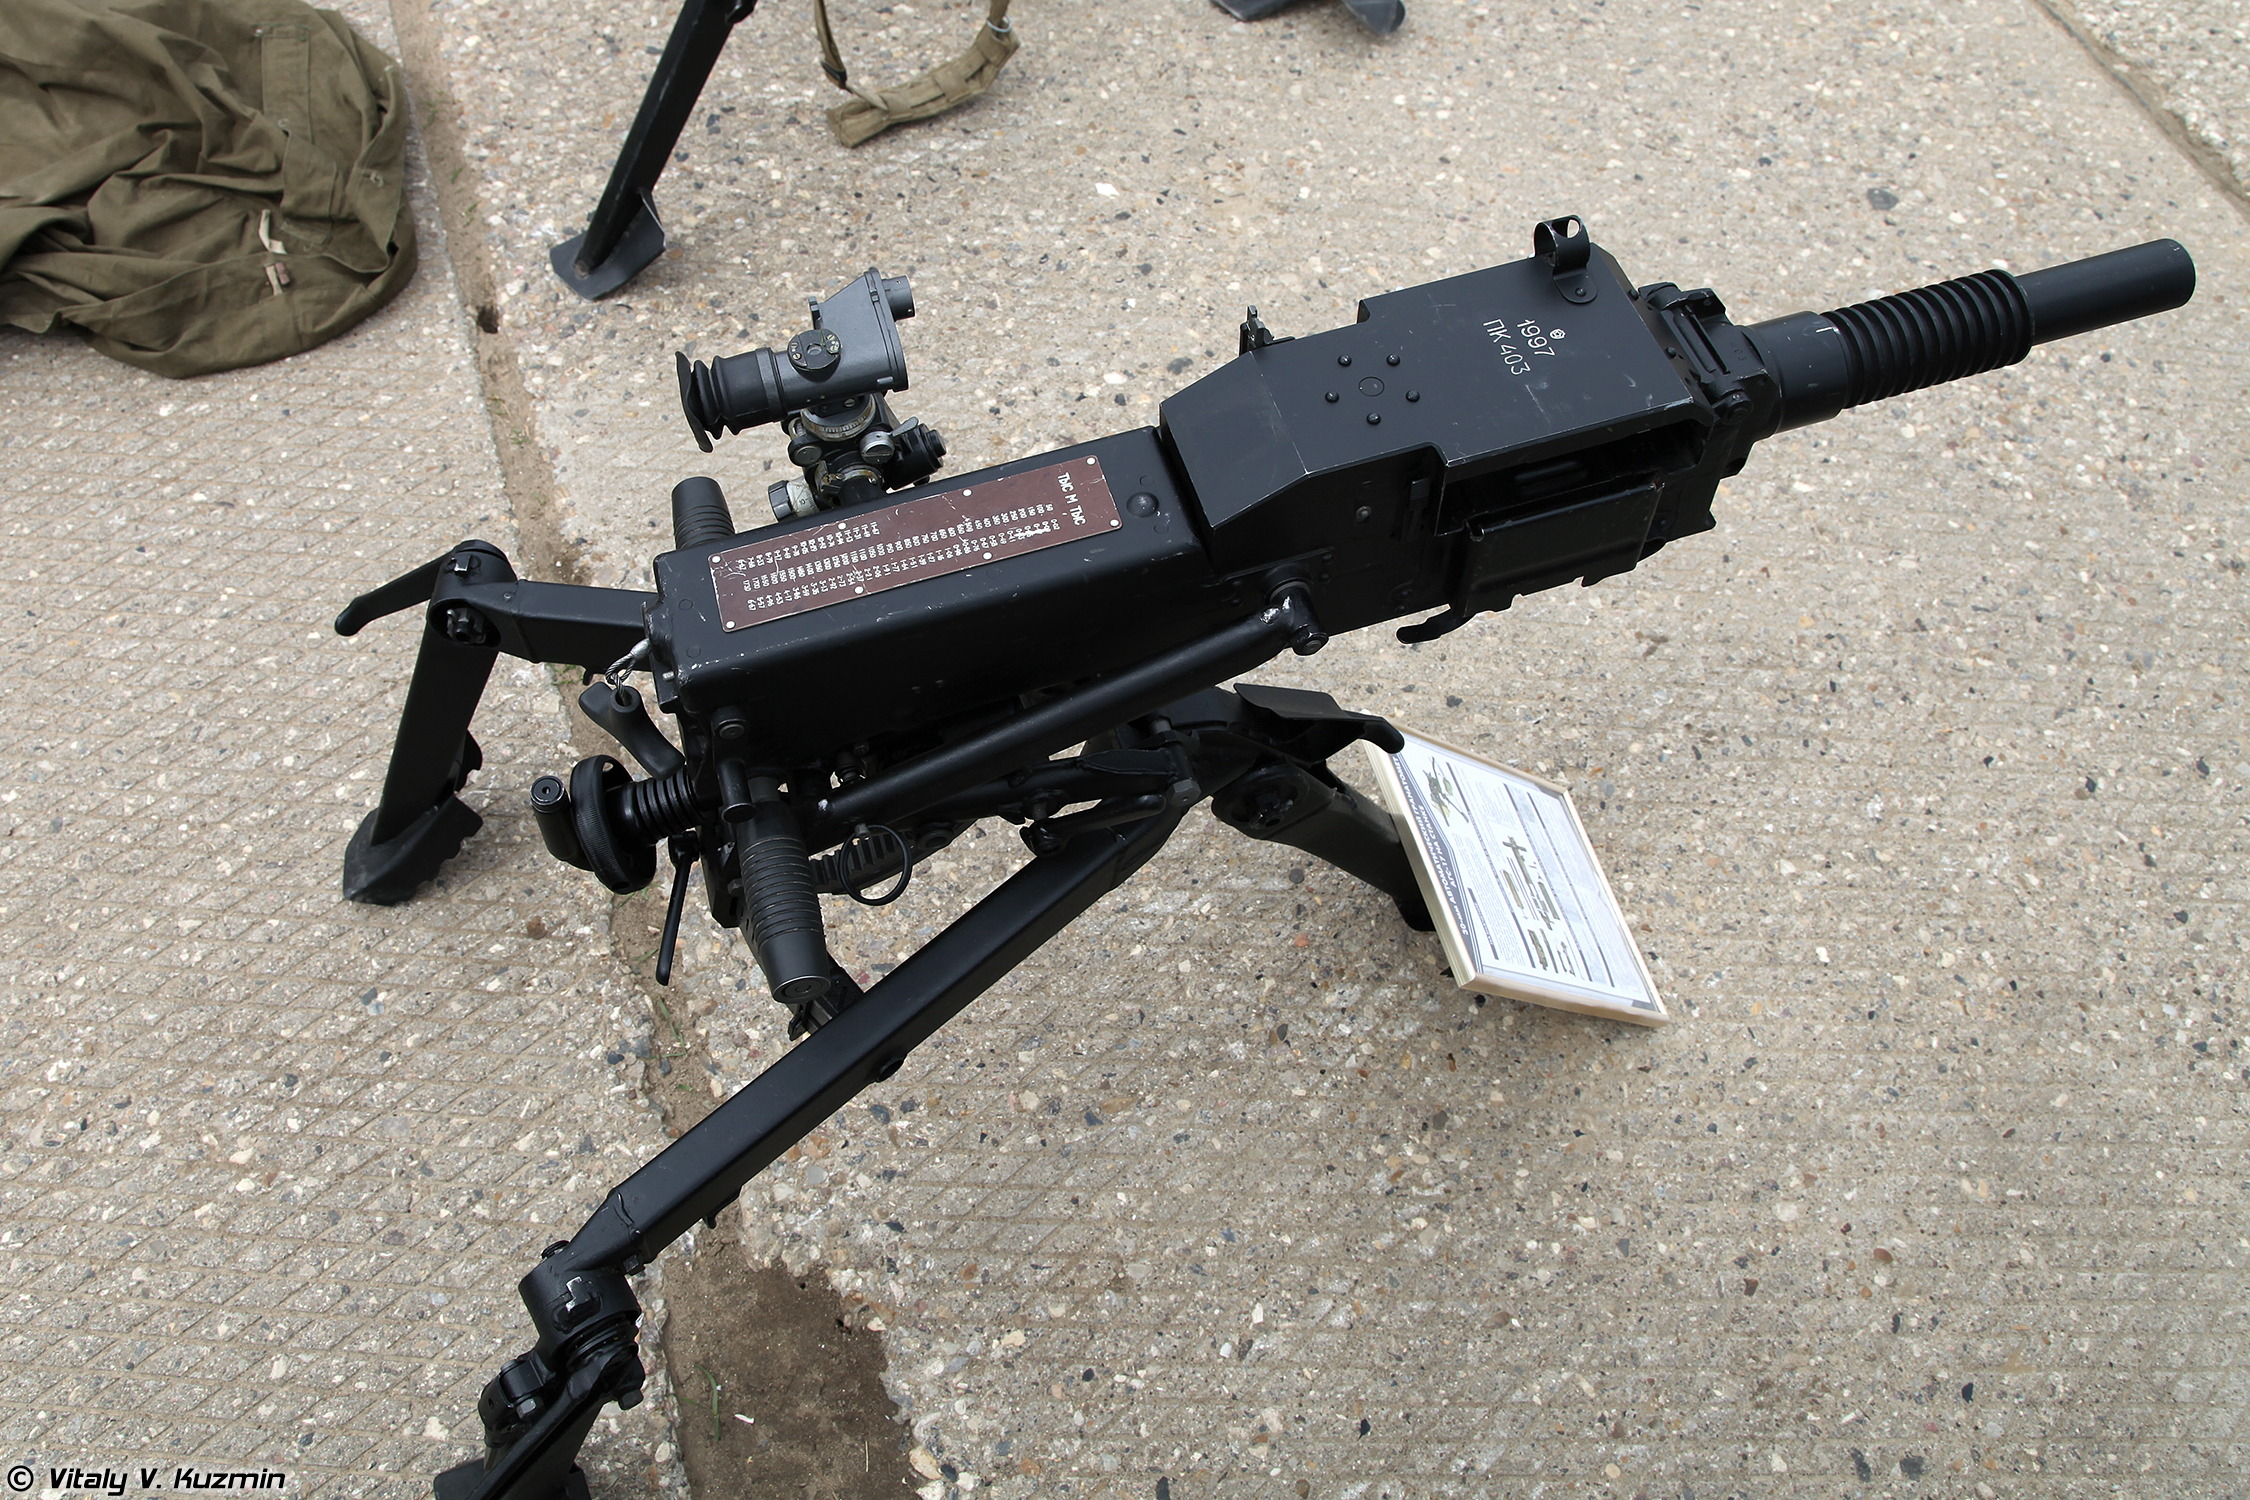 AGS-17: technical specifications. Grenade Launcher AGS-17 Flame 91